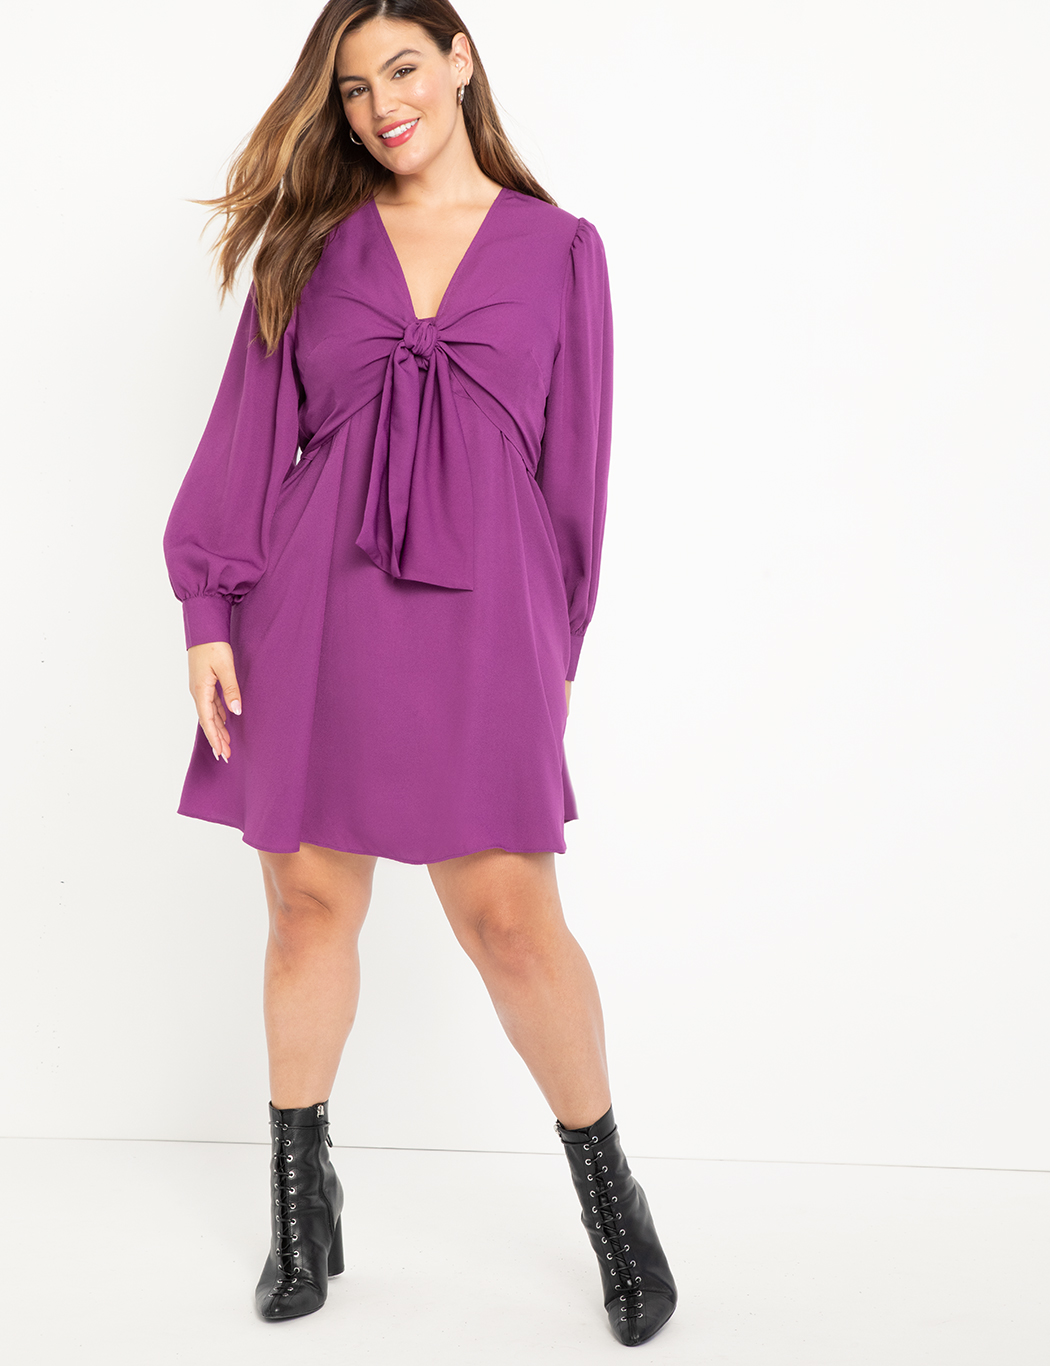 ELOQUII Elements Tie Front Dress